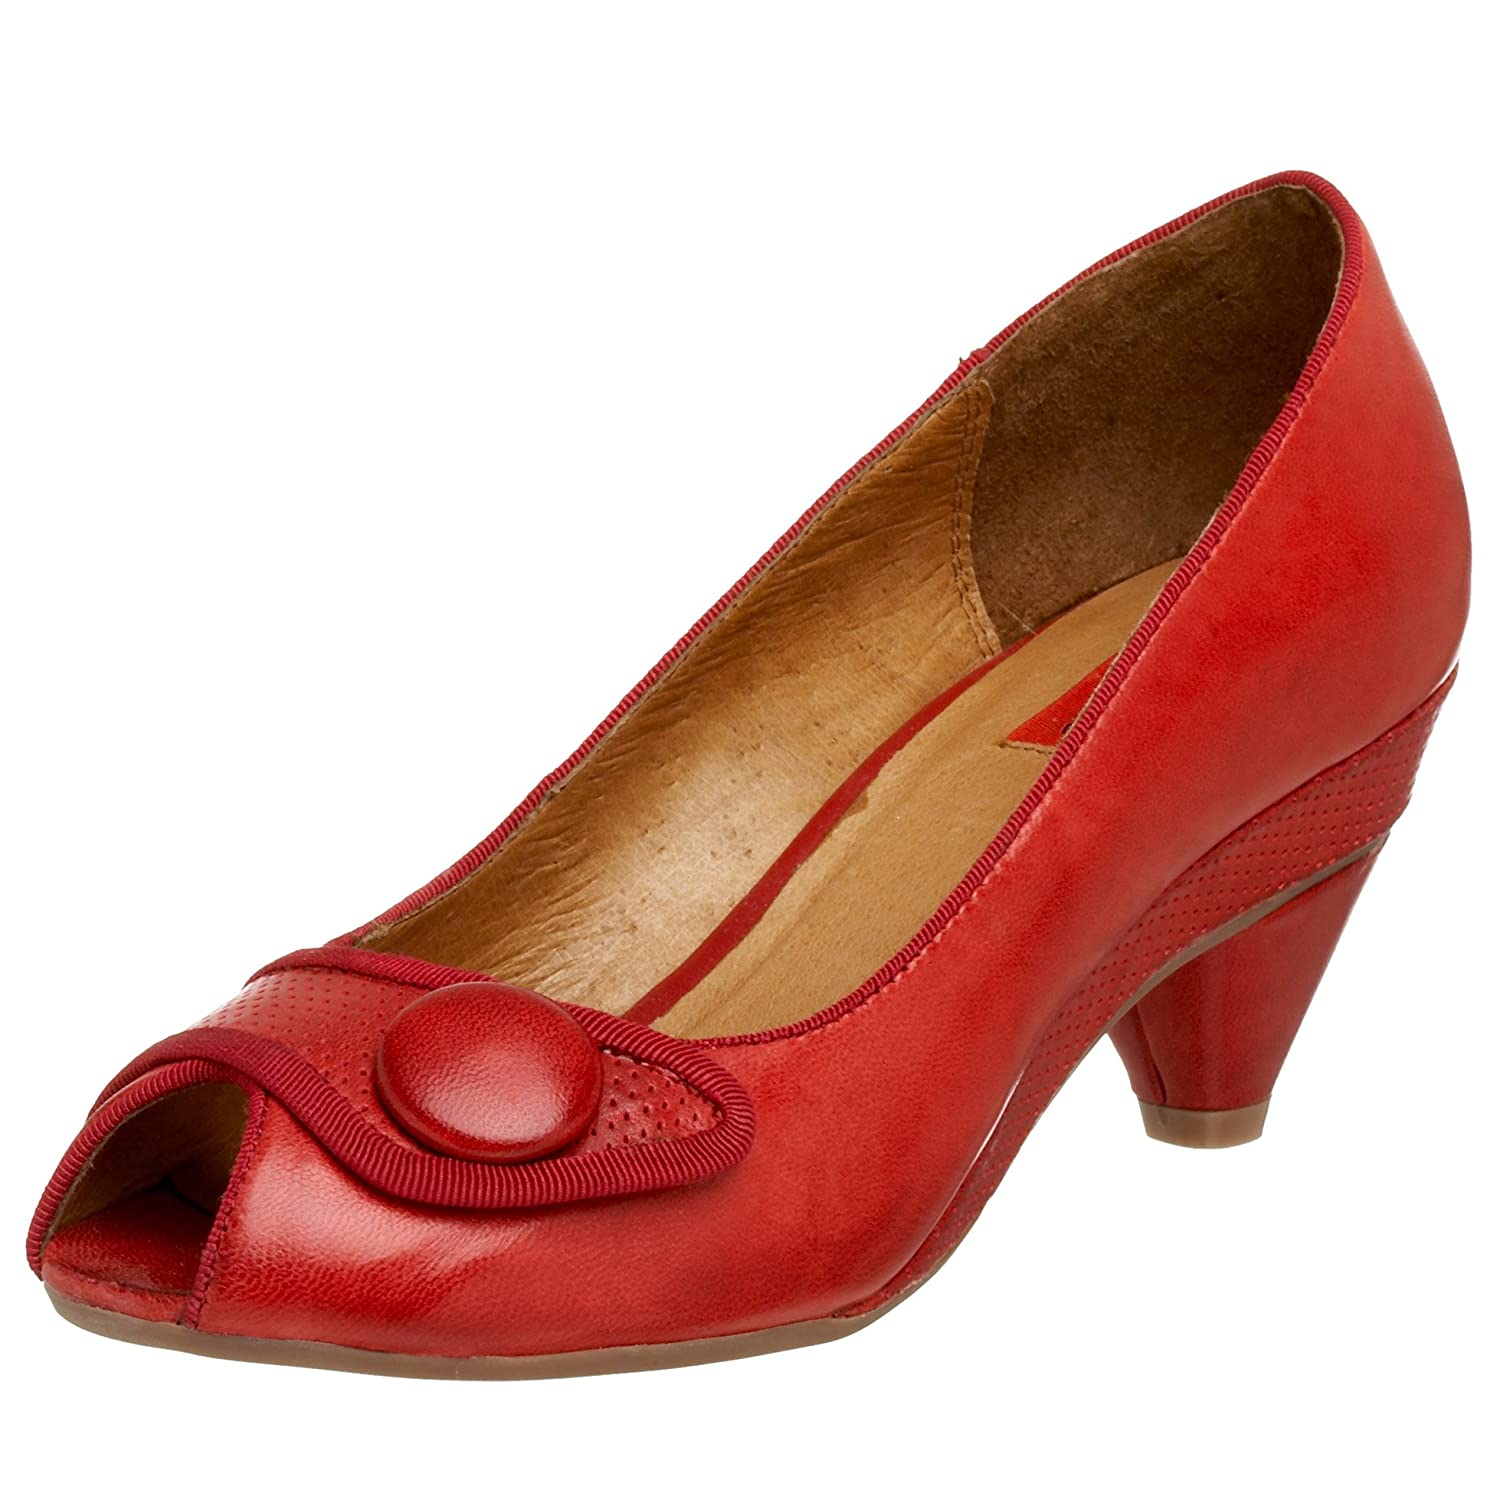 Miz Mooz Ruby Peep Toe Pump :  peeps designer ruby heels